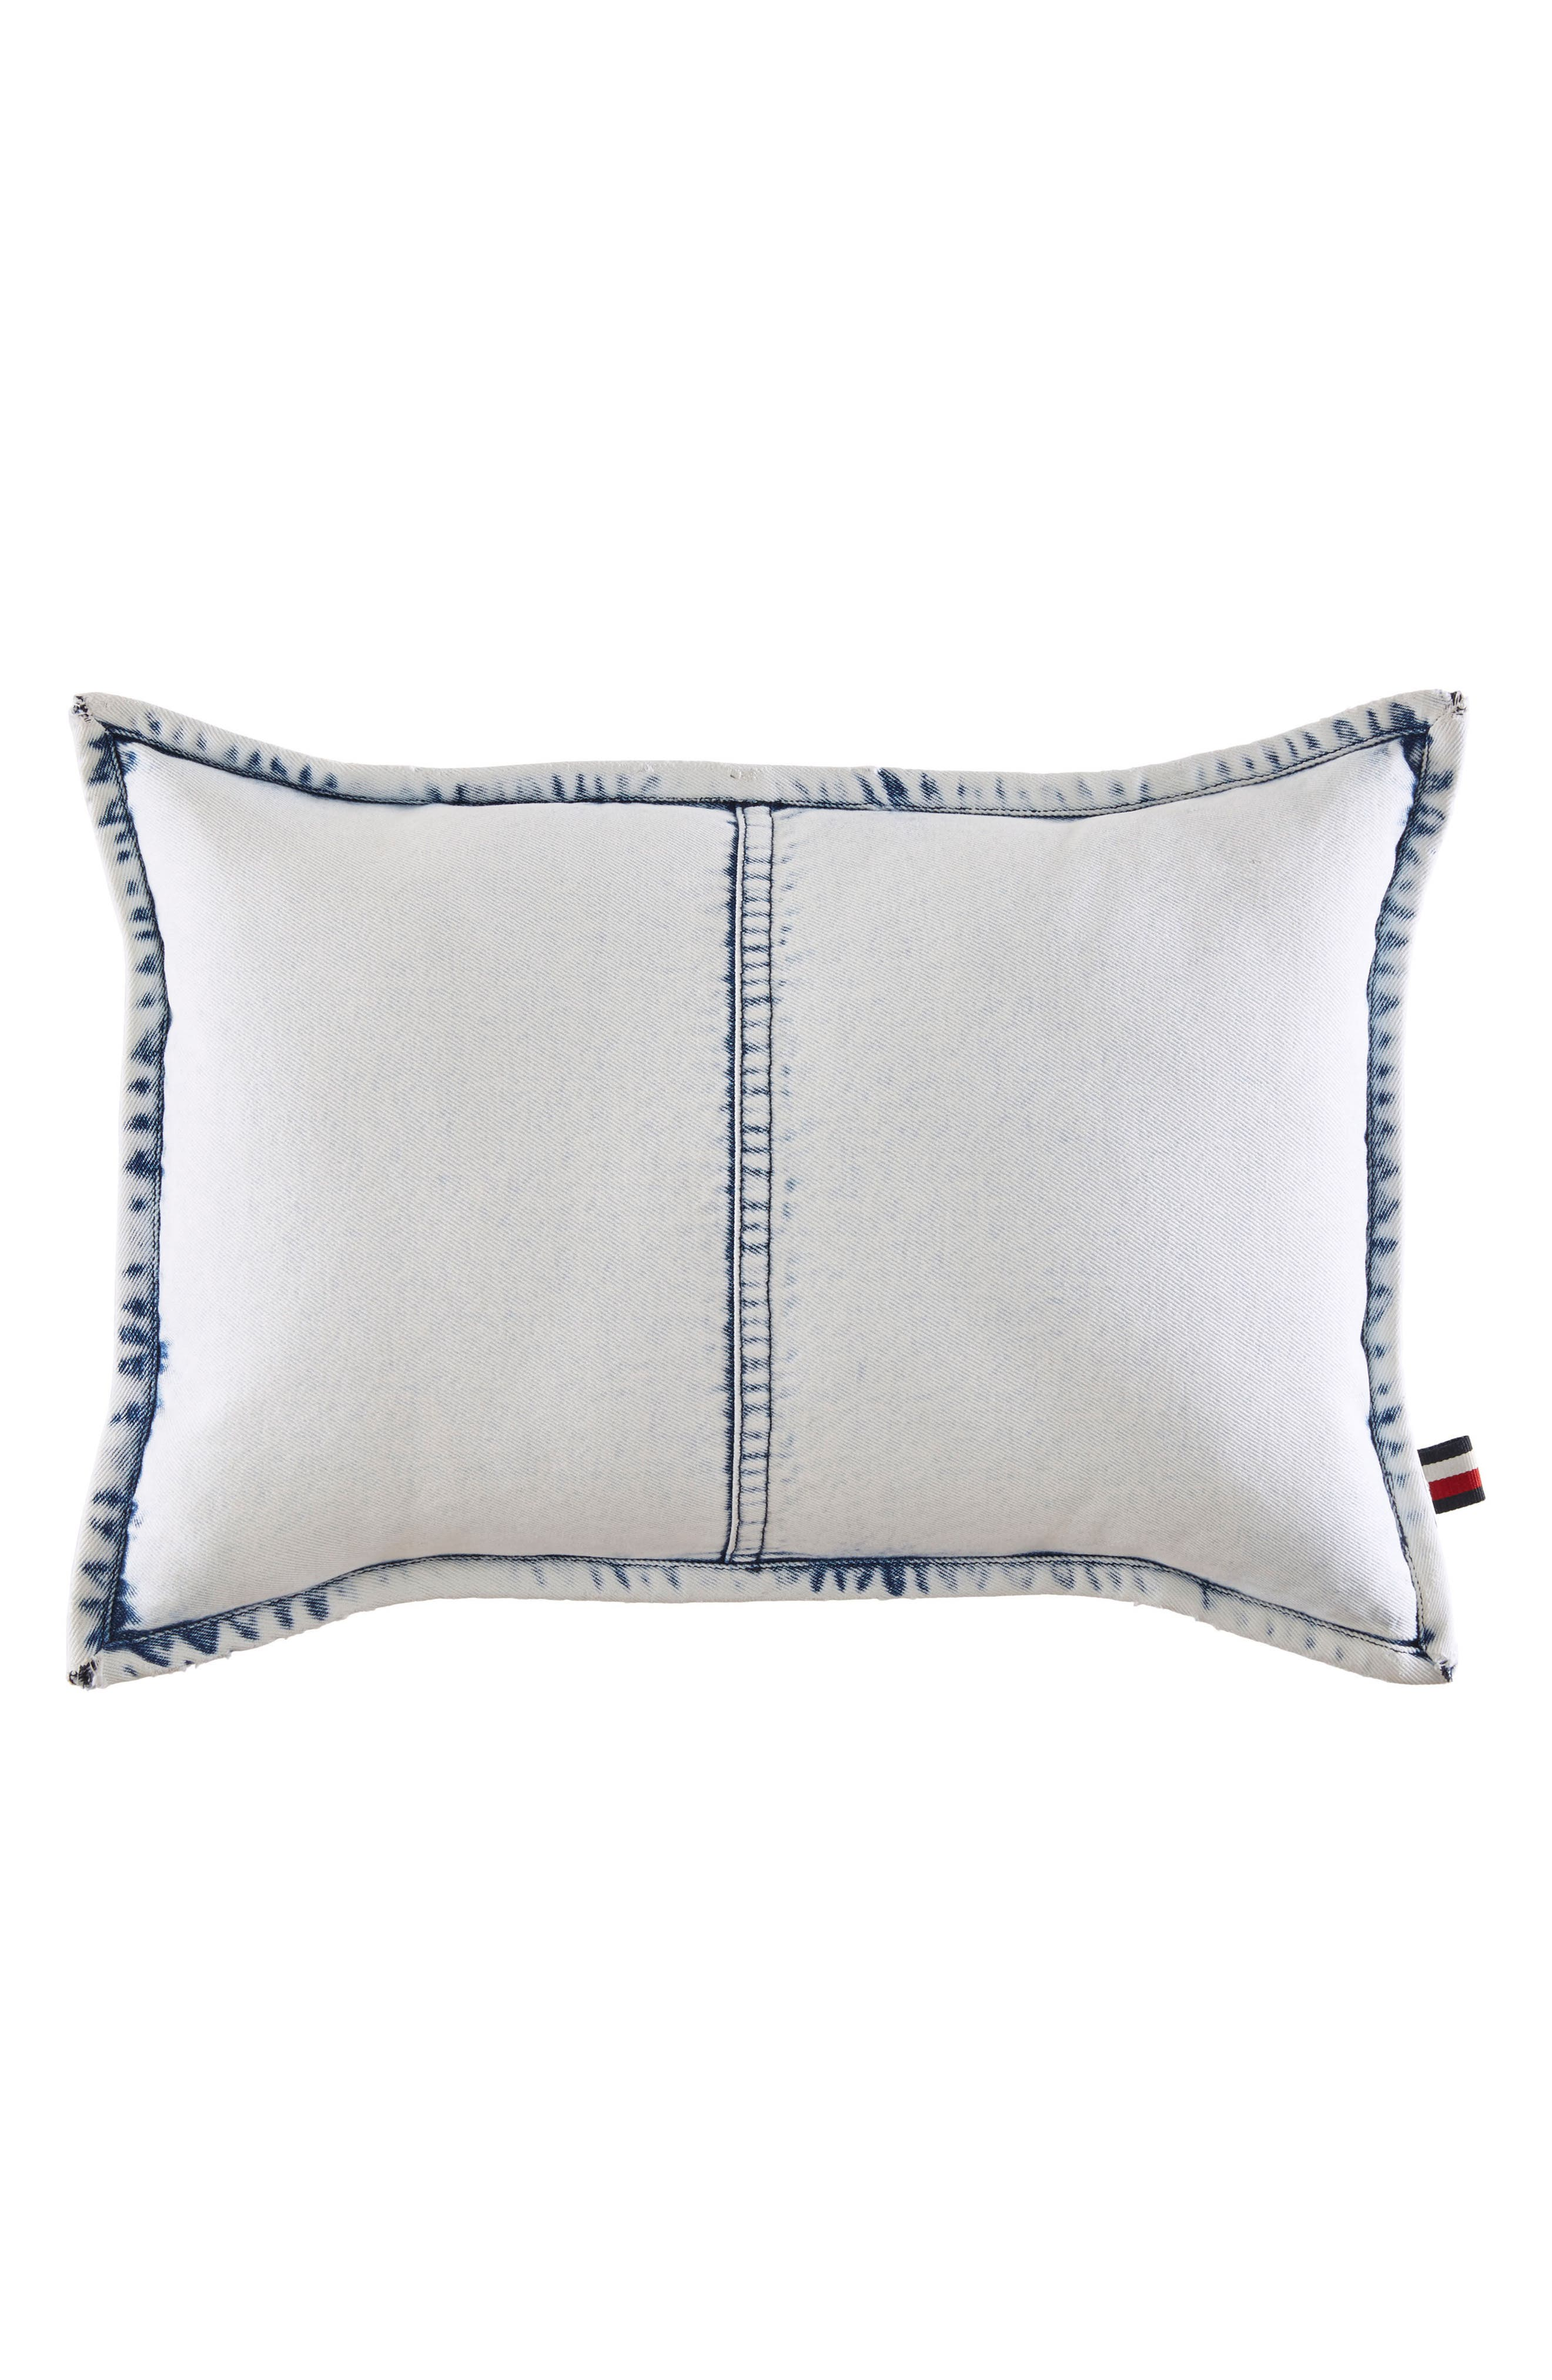 Main Image - Tommy Hilfiger Rip & Repair Accent Pillow